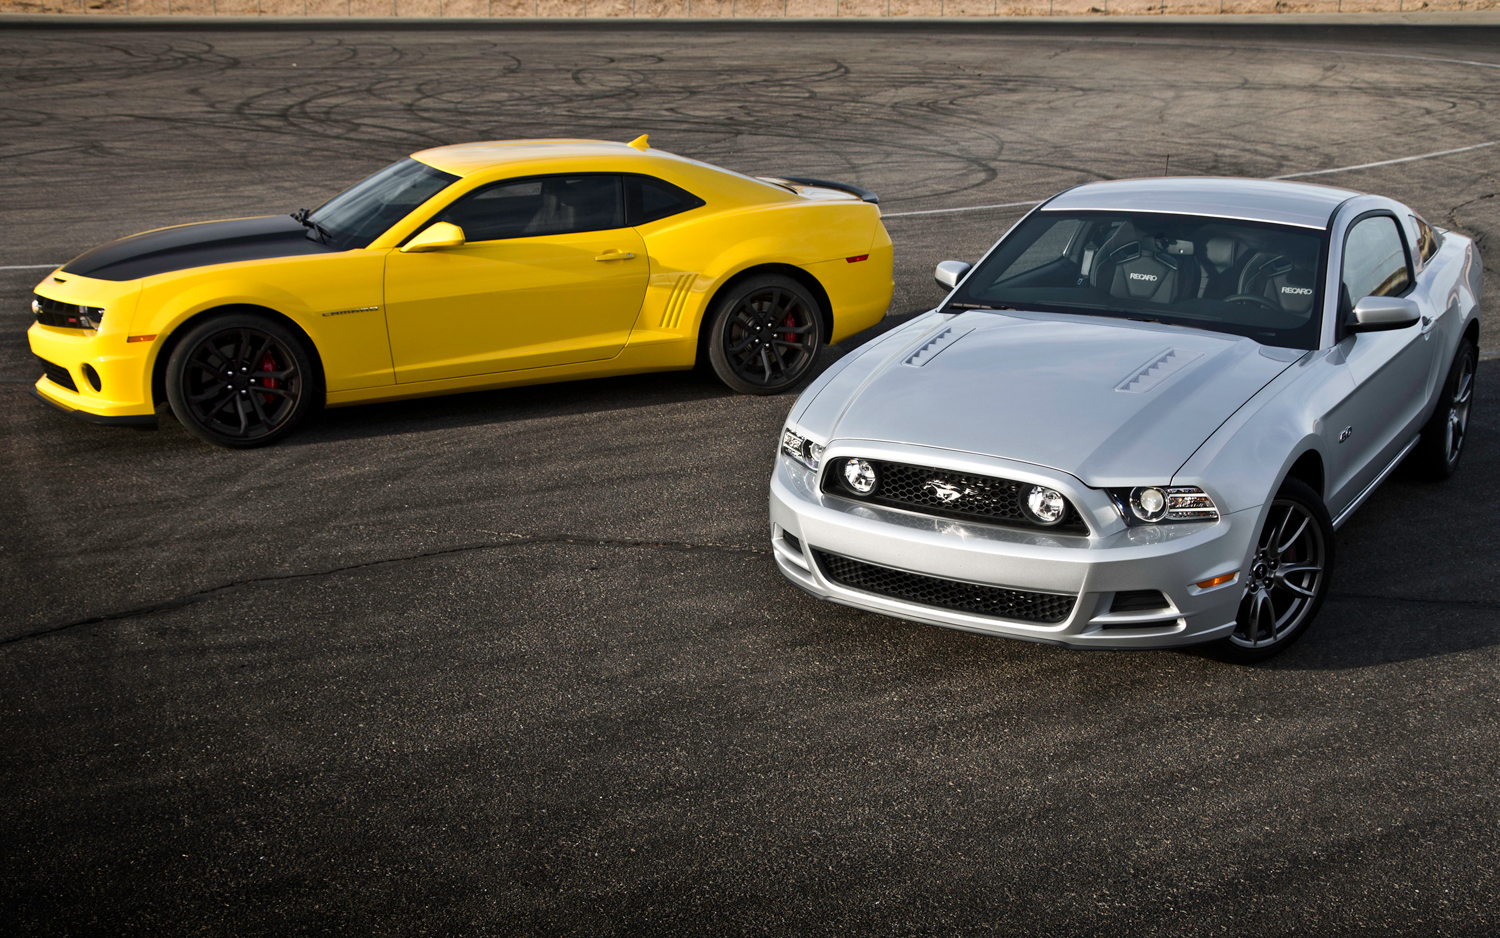 2013 Chevrolet Camaro Ss 1le Vs 2013 Ford Mustang Gt